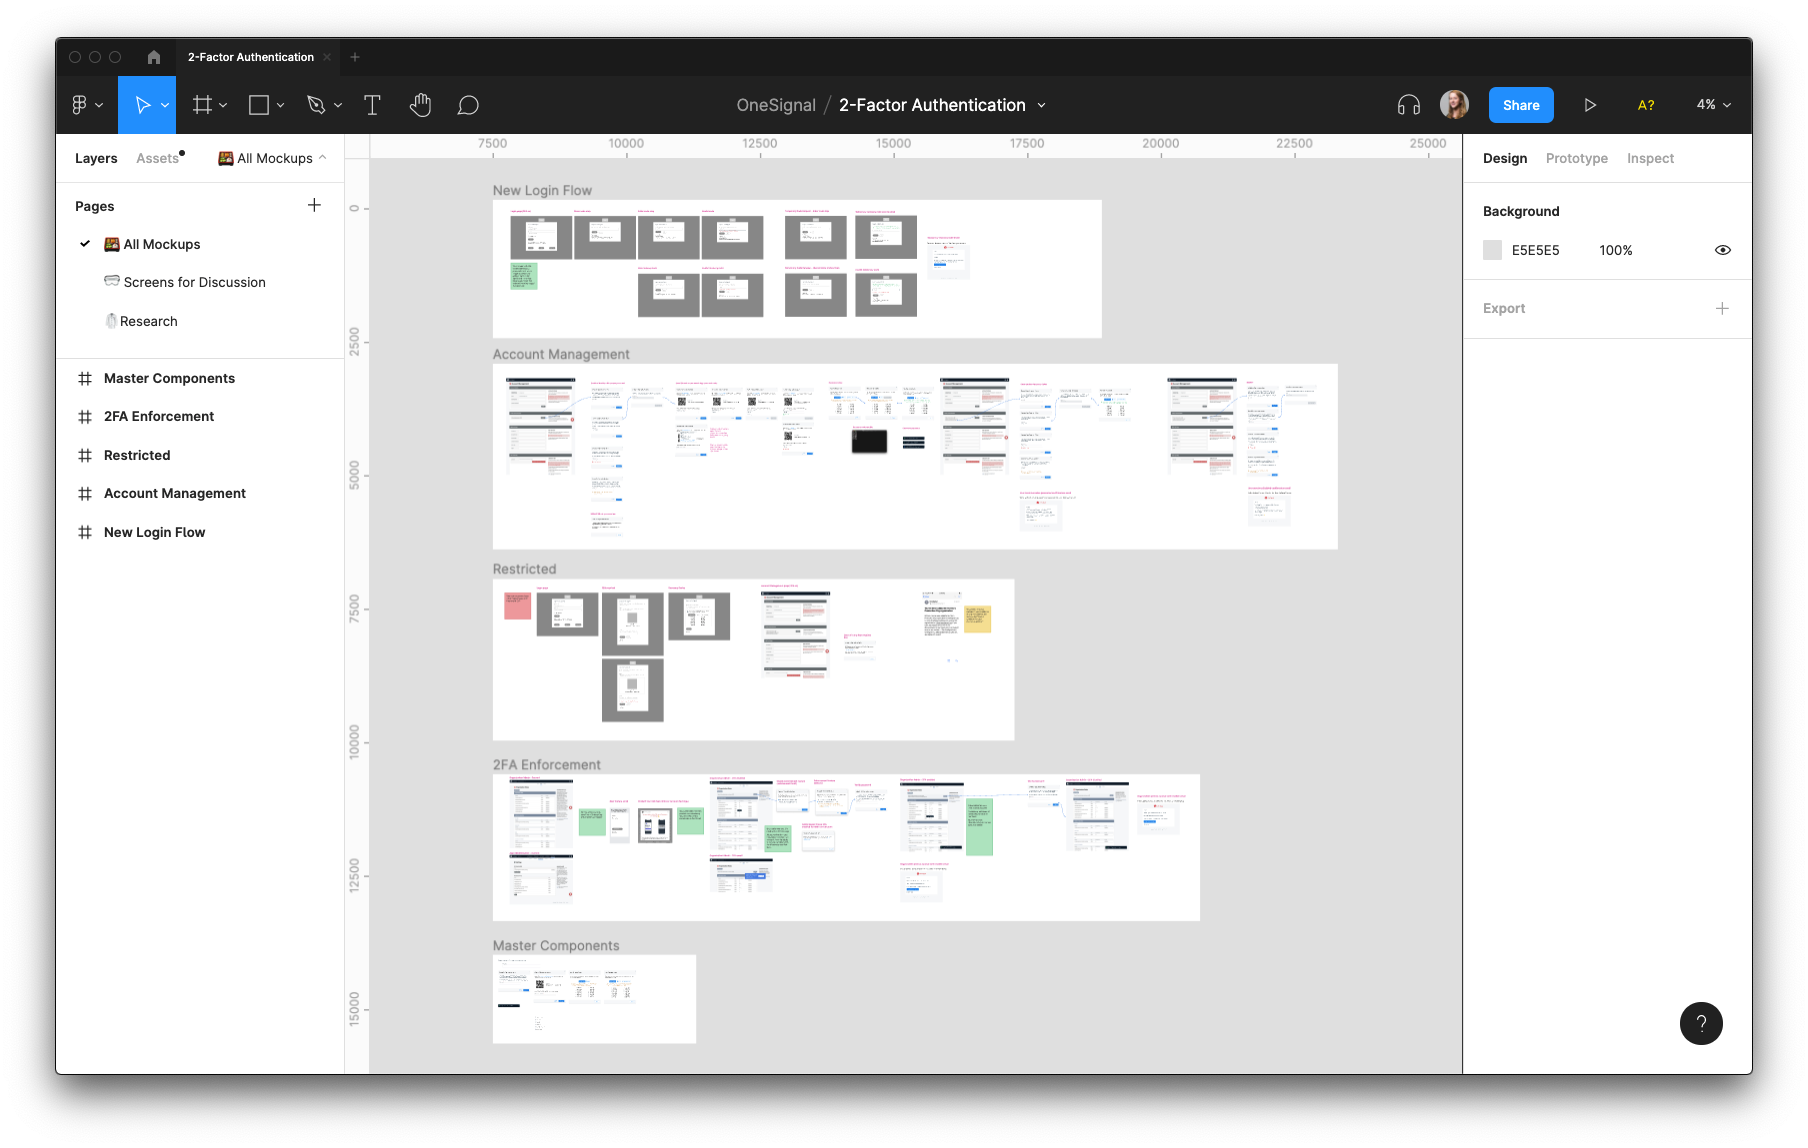 Screenshot from the Figma desktop application with multiple artboards with desktop screen designs visible